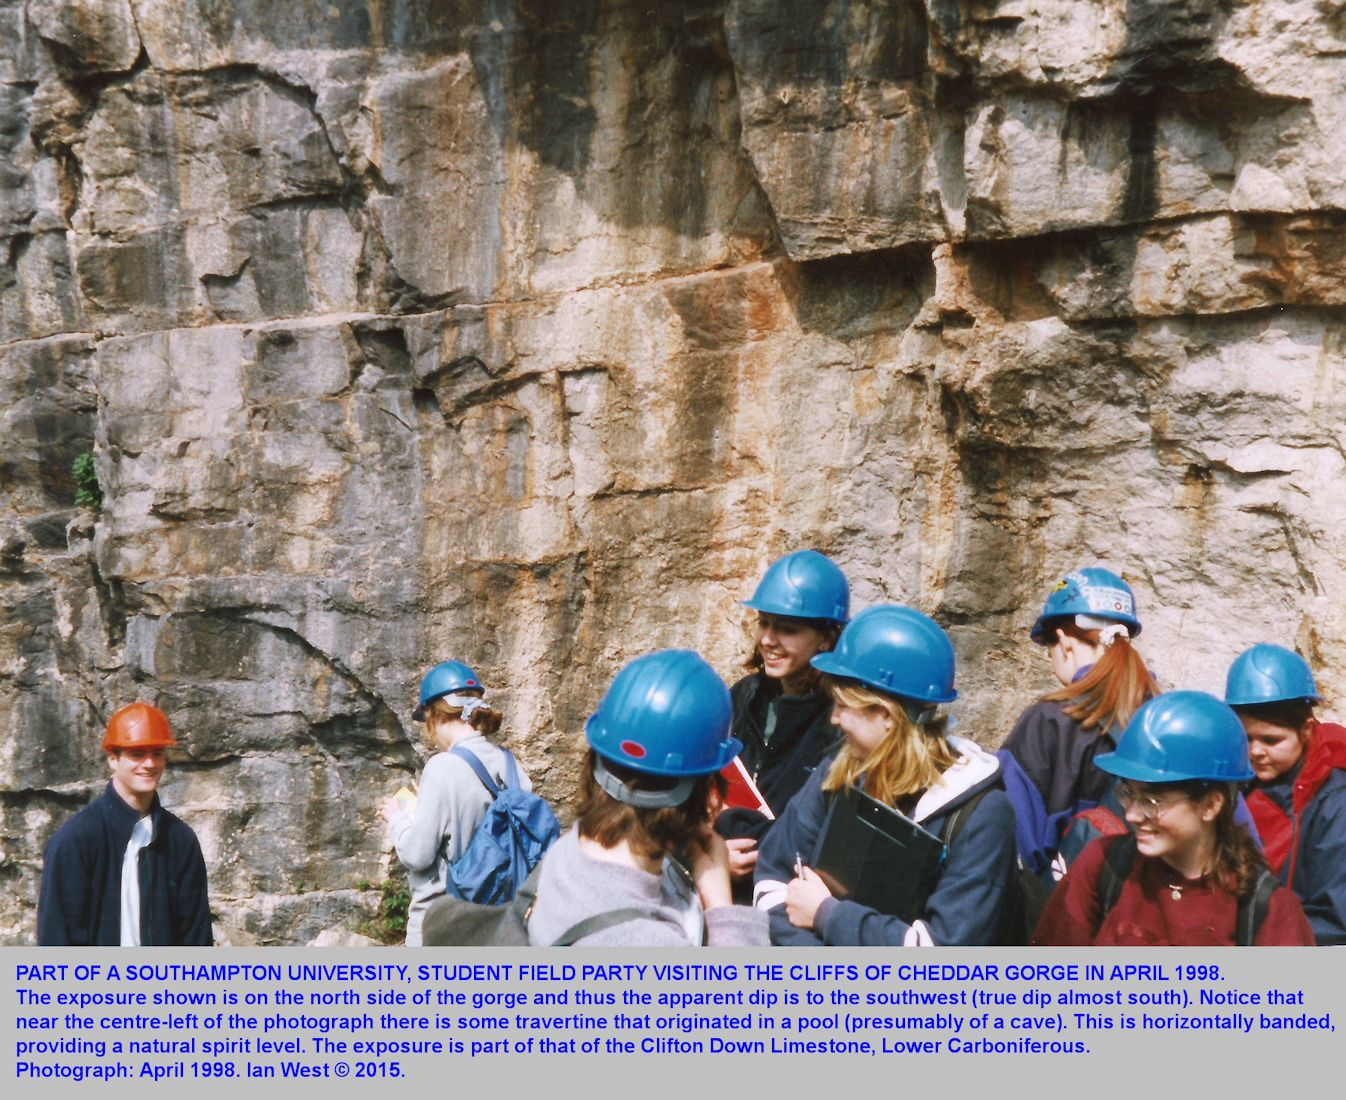 A Southampton University student field trip to Cheddar Gorge, Mendip Hills, Somerset, in April 1998